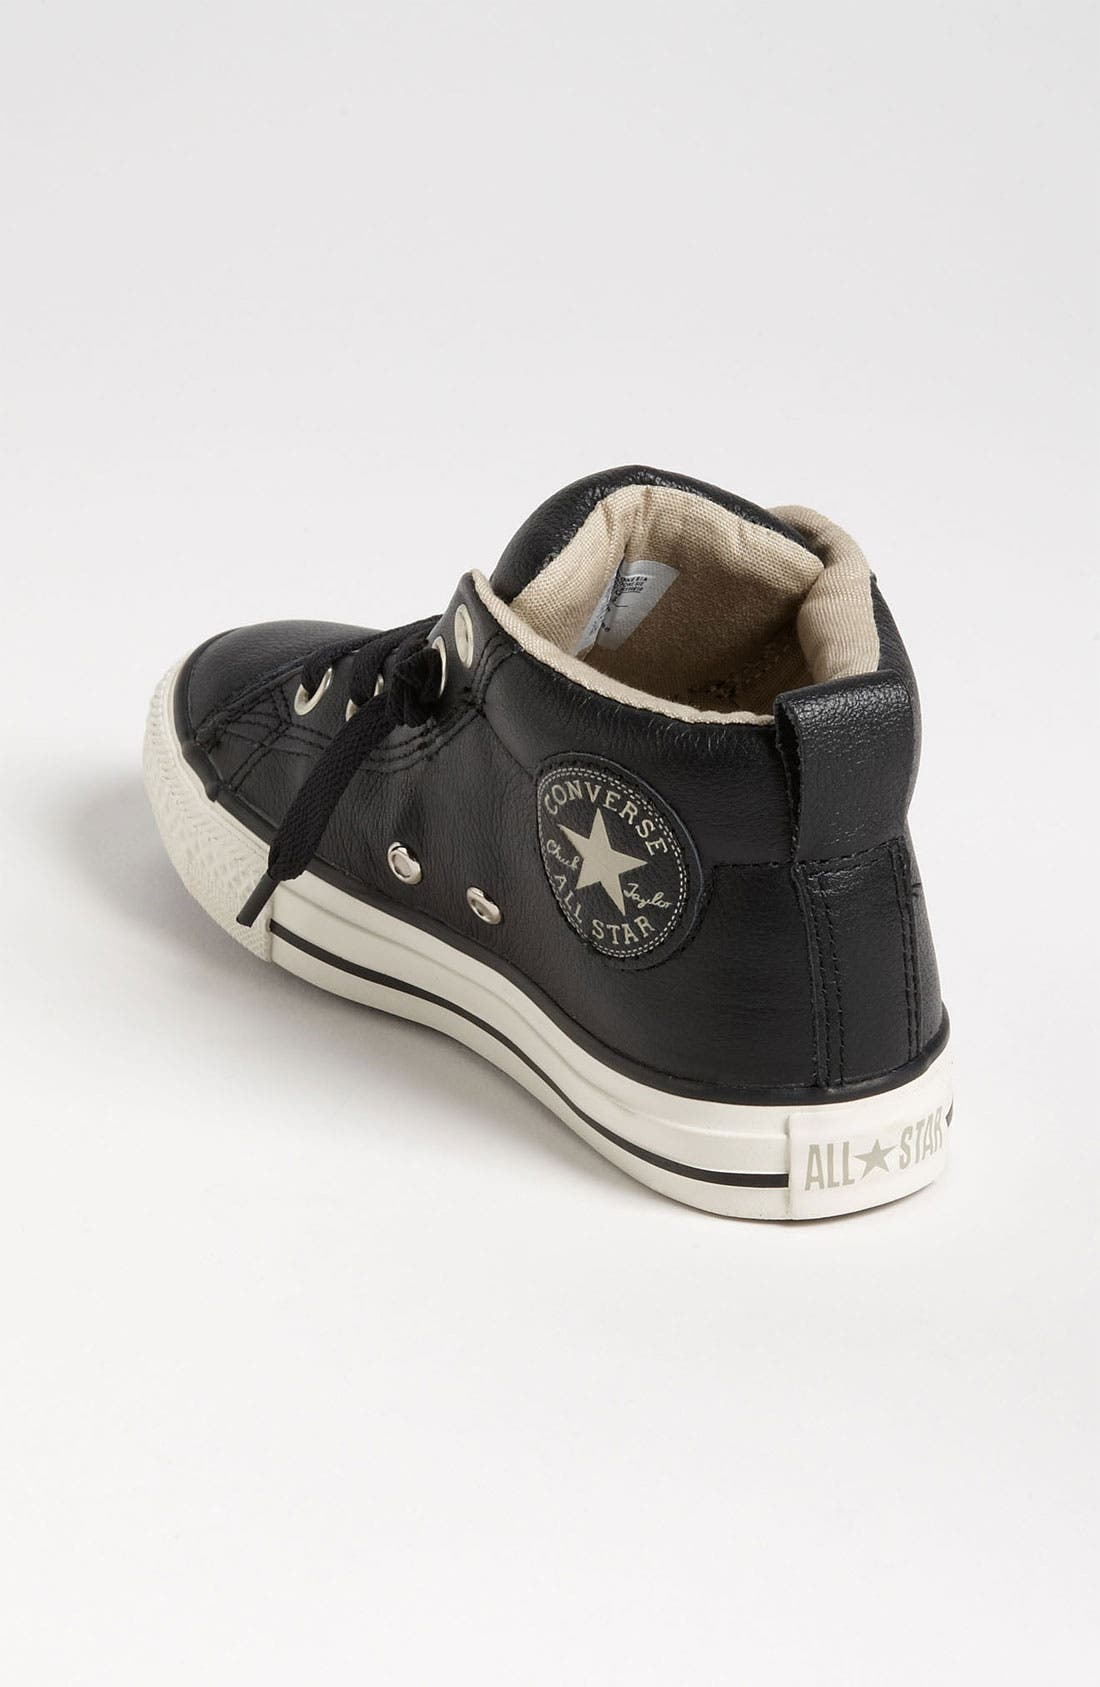 Alternate Image 2  - Converse 'Street' Mid Sneaker (Toddler, Little Kid & Big Kid)